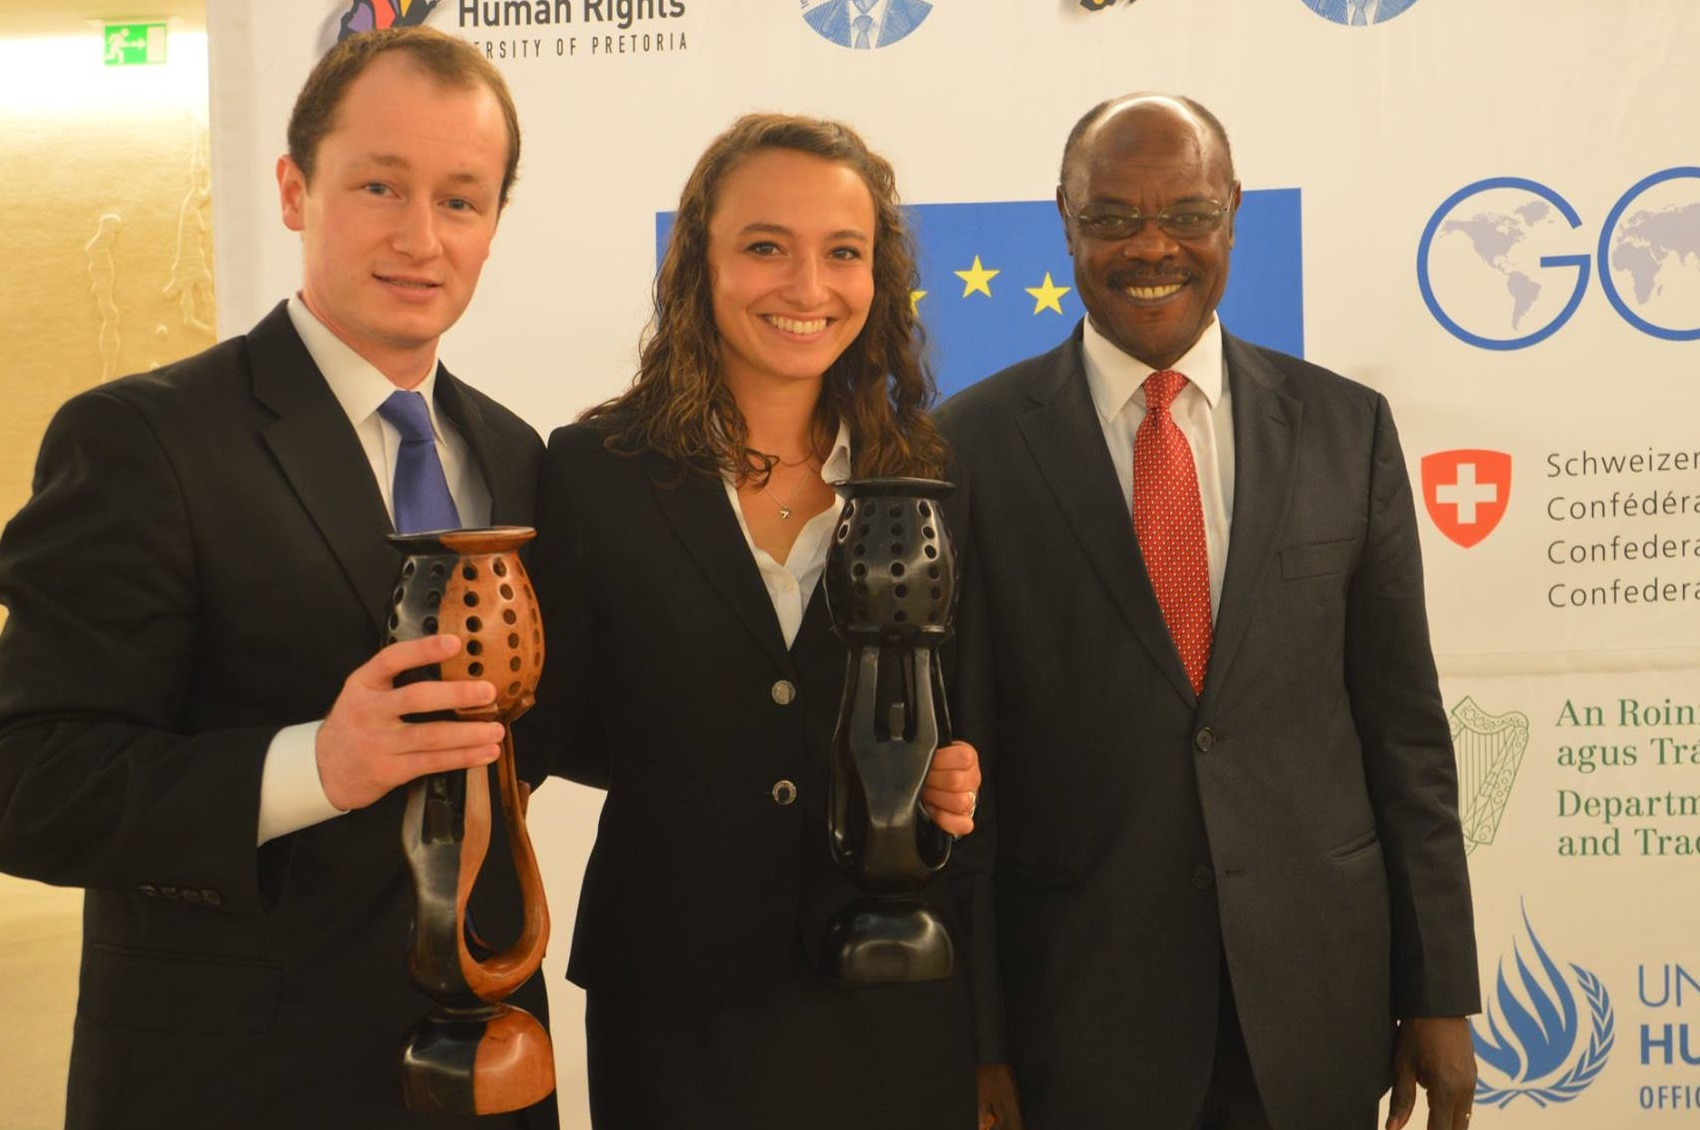 Patrick Henry College moot court team at 2016 Nelson Mandela World Human Rights Moot Court Competition